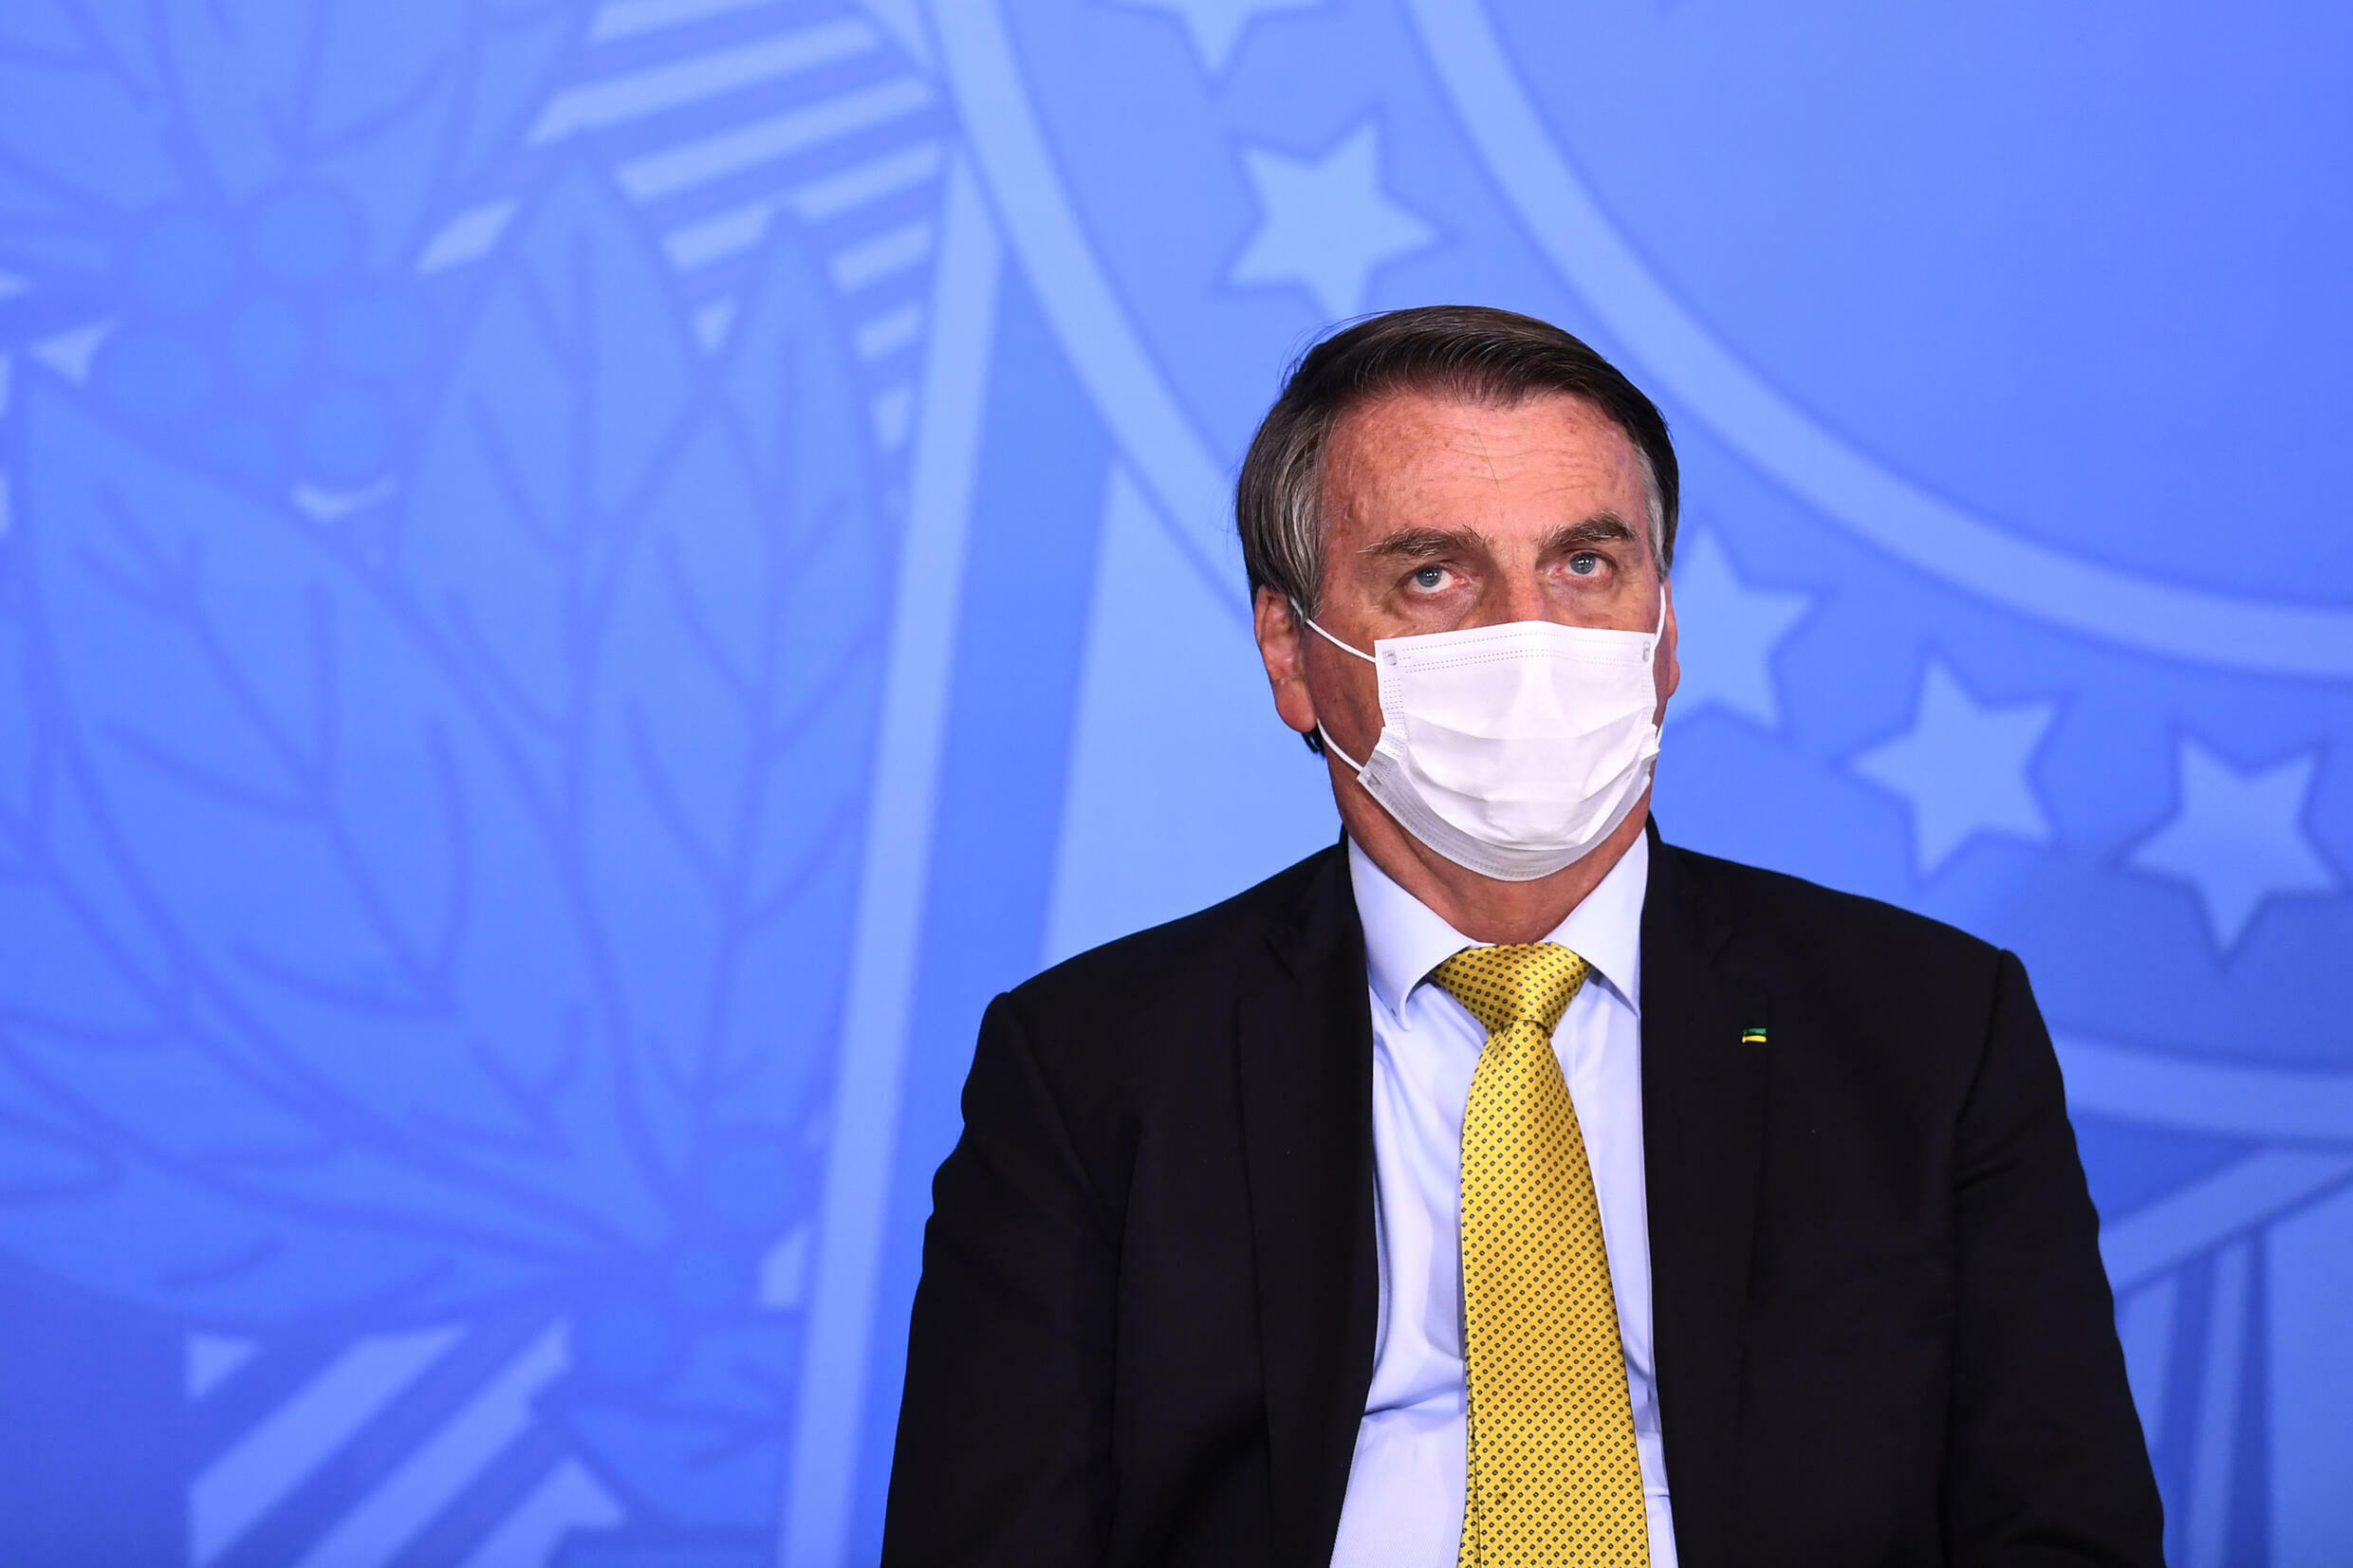 Brazilian President Jair Bolsonaro is accused of knowing about but failing to report alleged corruption in the purchase of a coronavirus vaccine